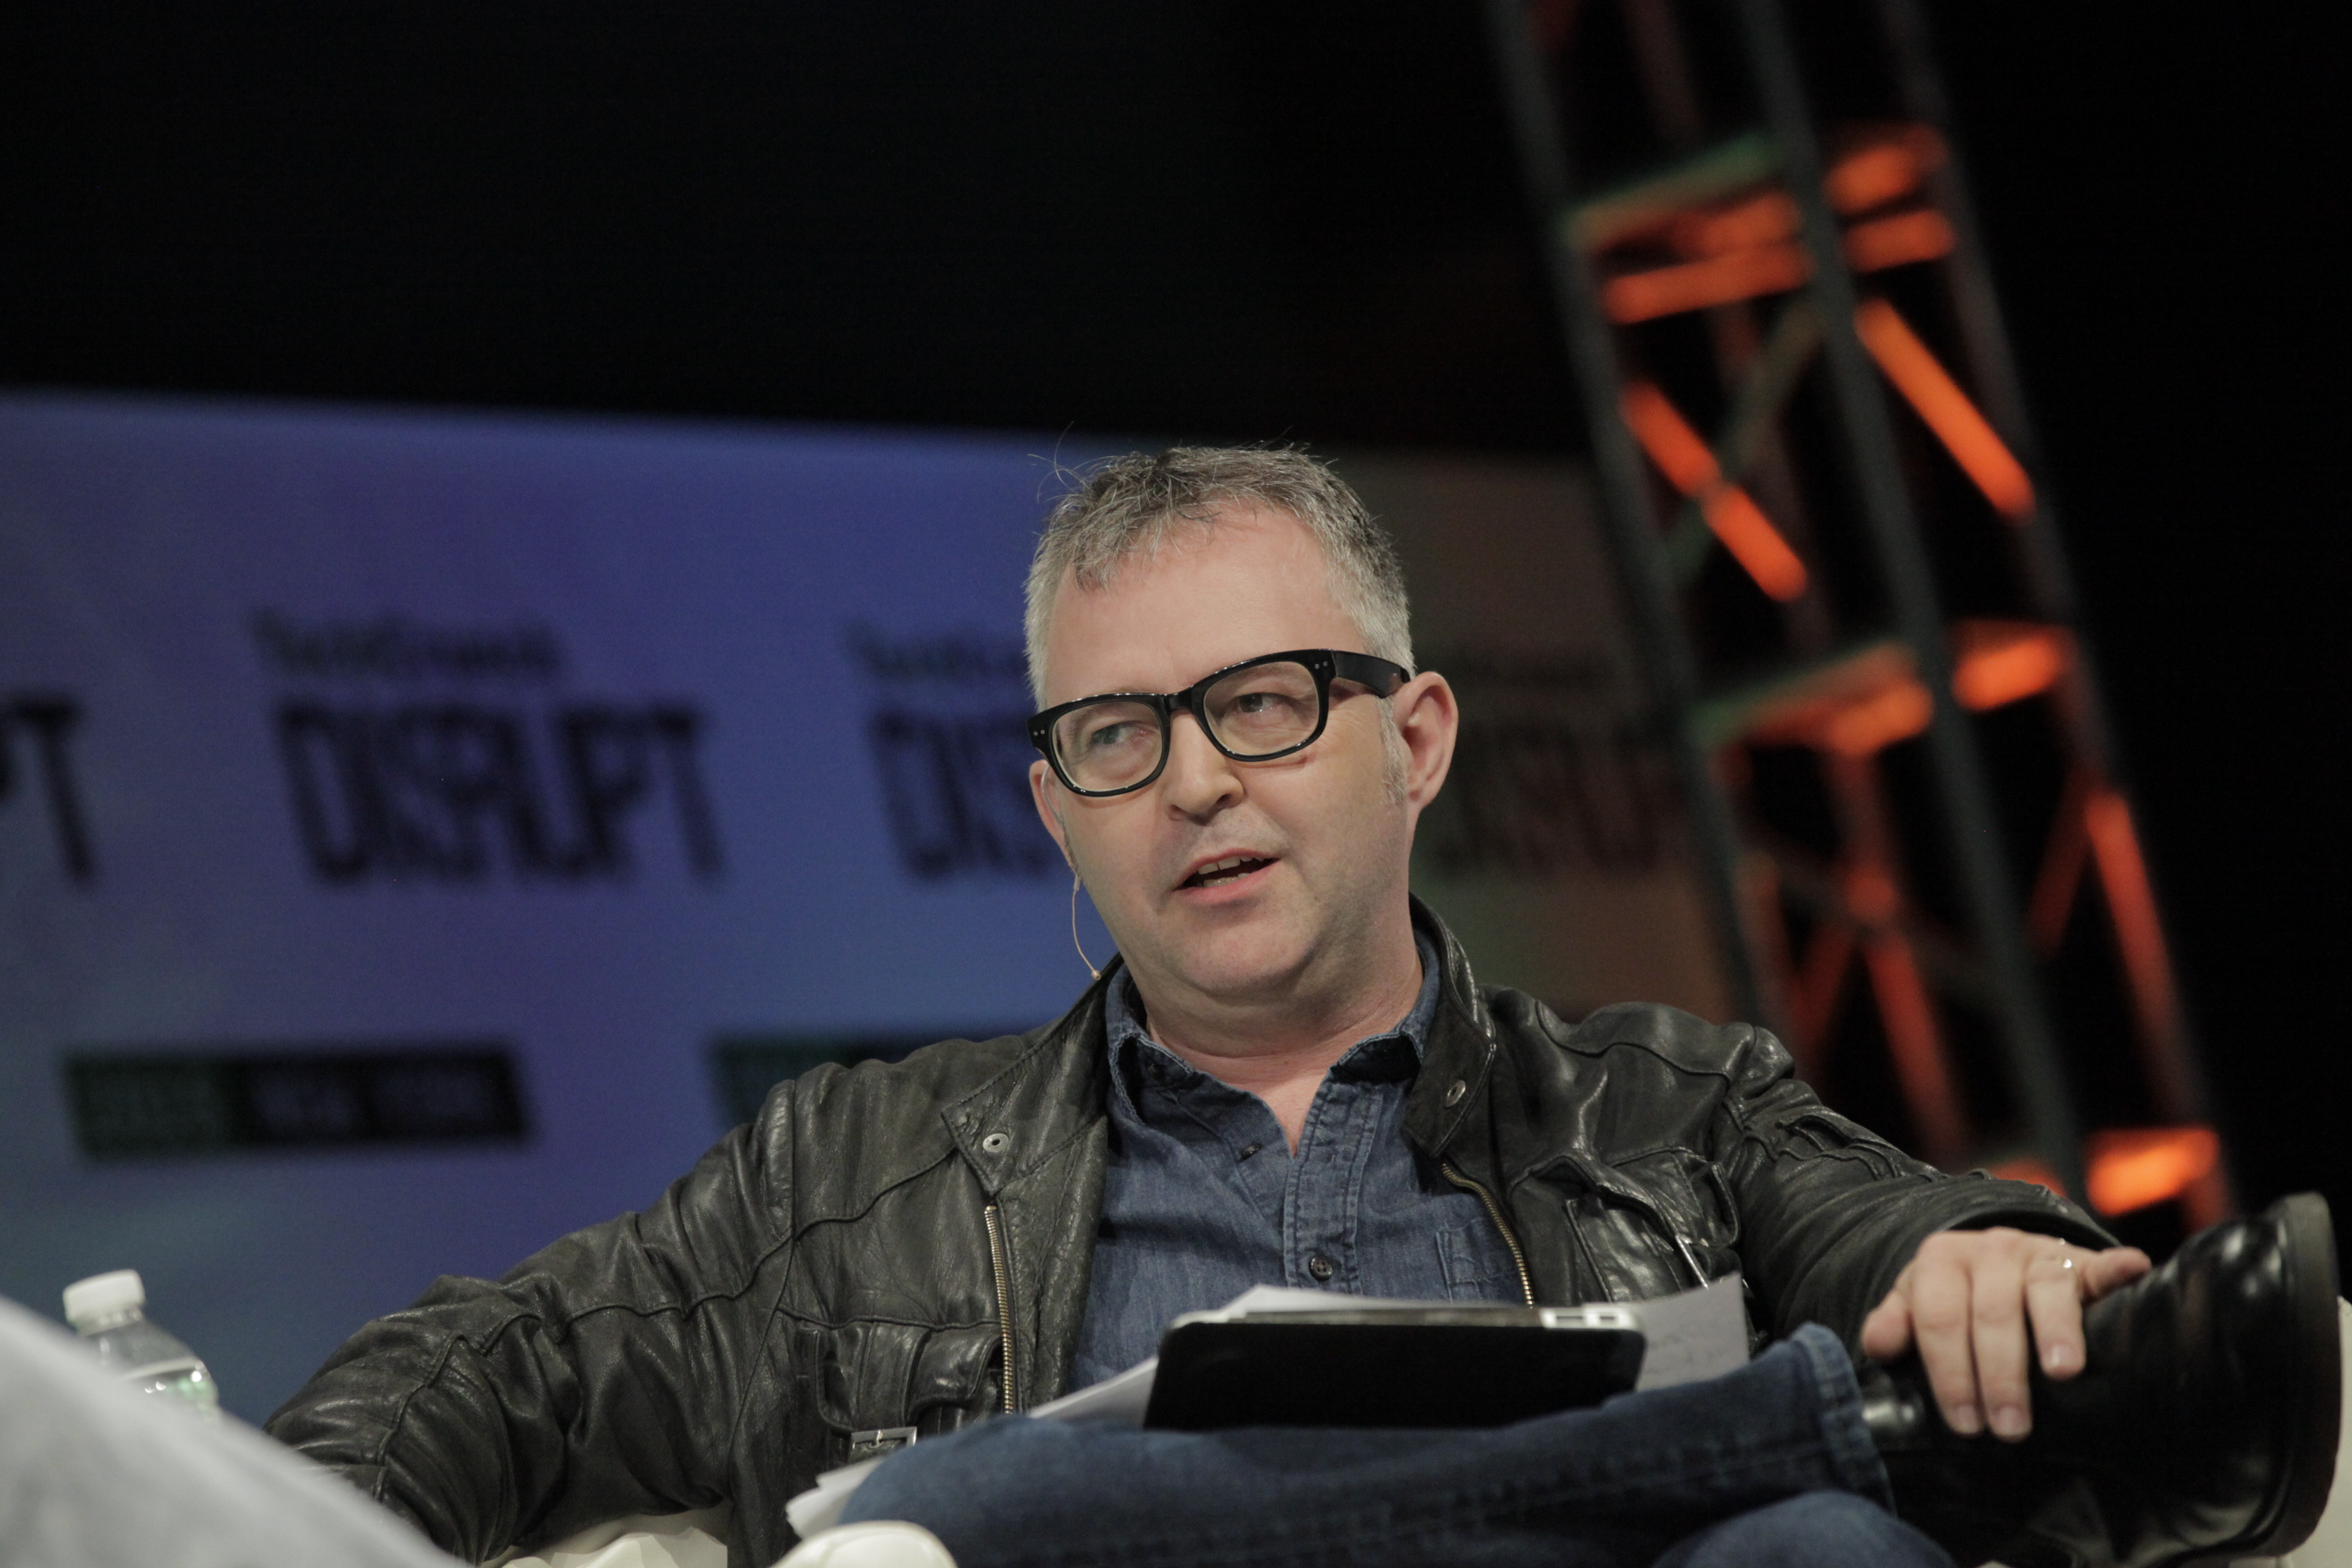 Meet TechCrunch's Mike Butcher at Web Summit on Tuesday